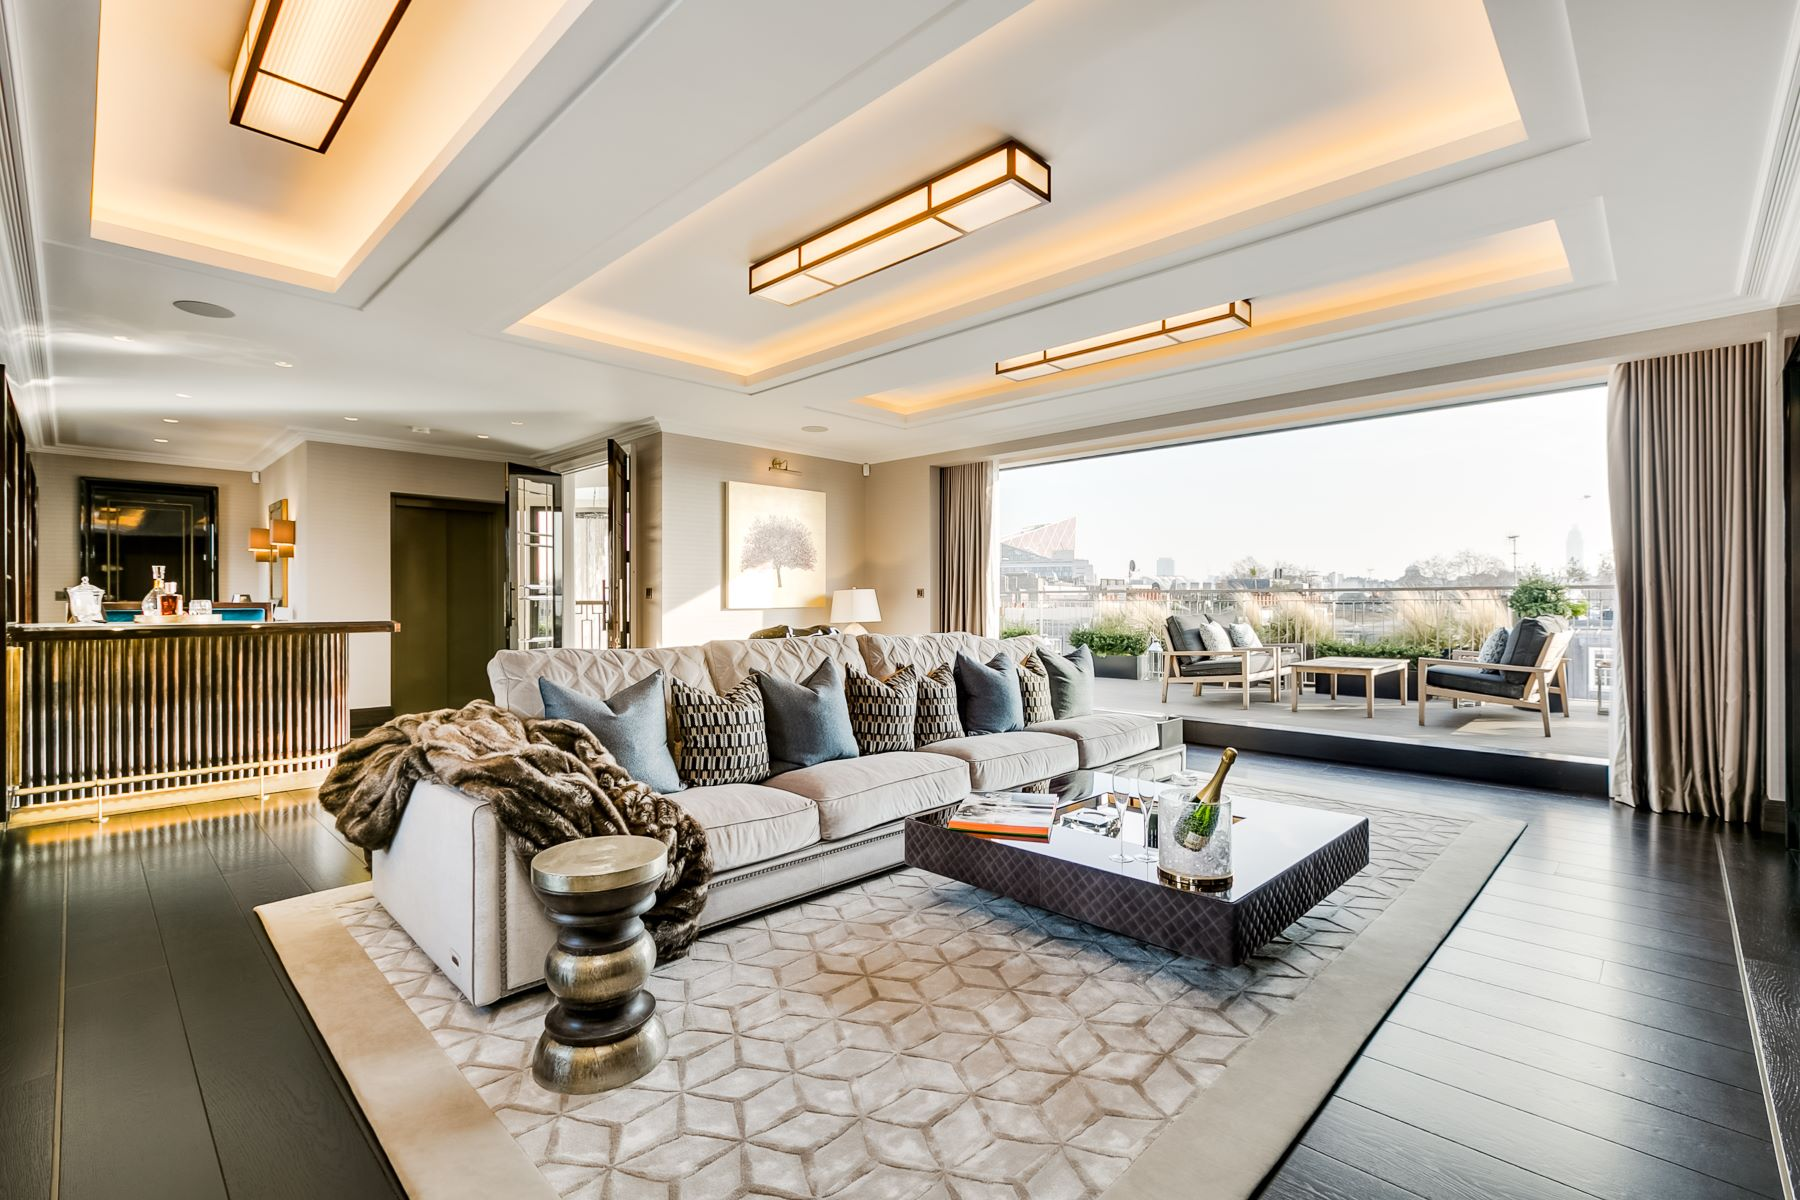 Apartment for Sale at 15 - 17 Eaton Place London, England SW1X 8LT United Kingdom